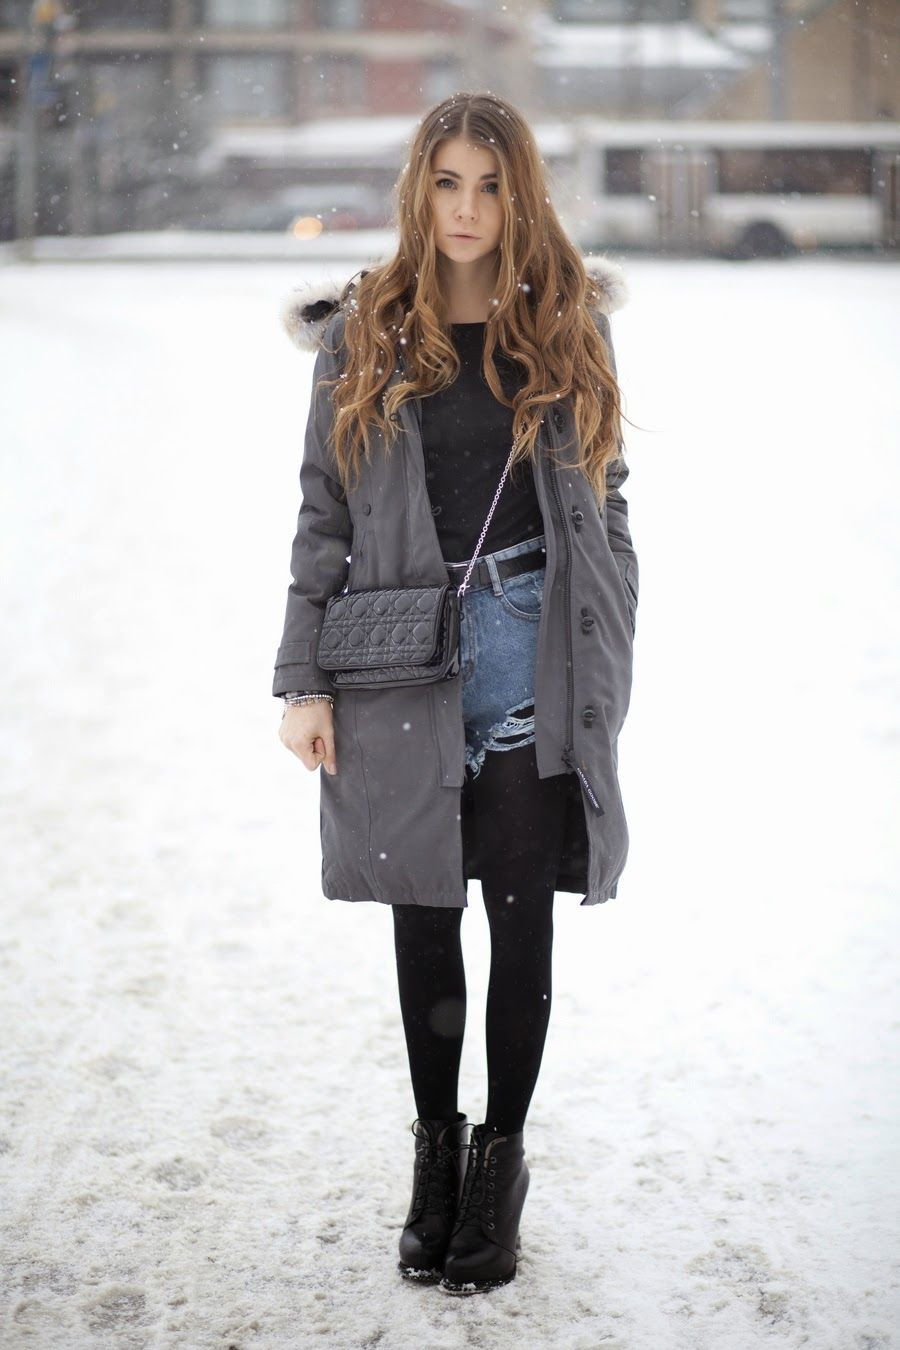 d09d91cbbc ... Winter Outfit Ideas Anna Vershinina is wearing a Kensington parka form  Canada Goose and the Canada Goose Black ...